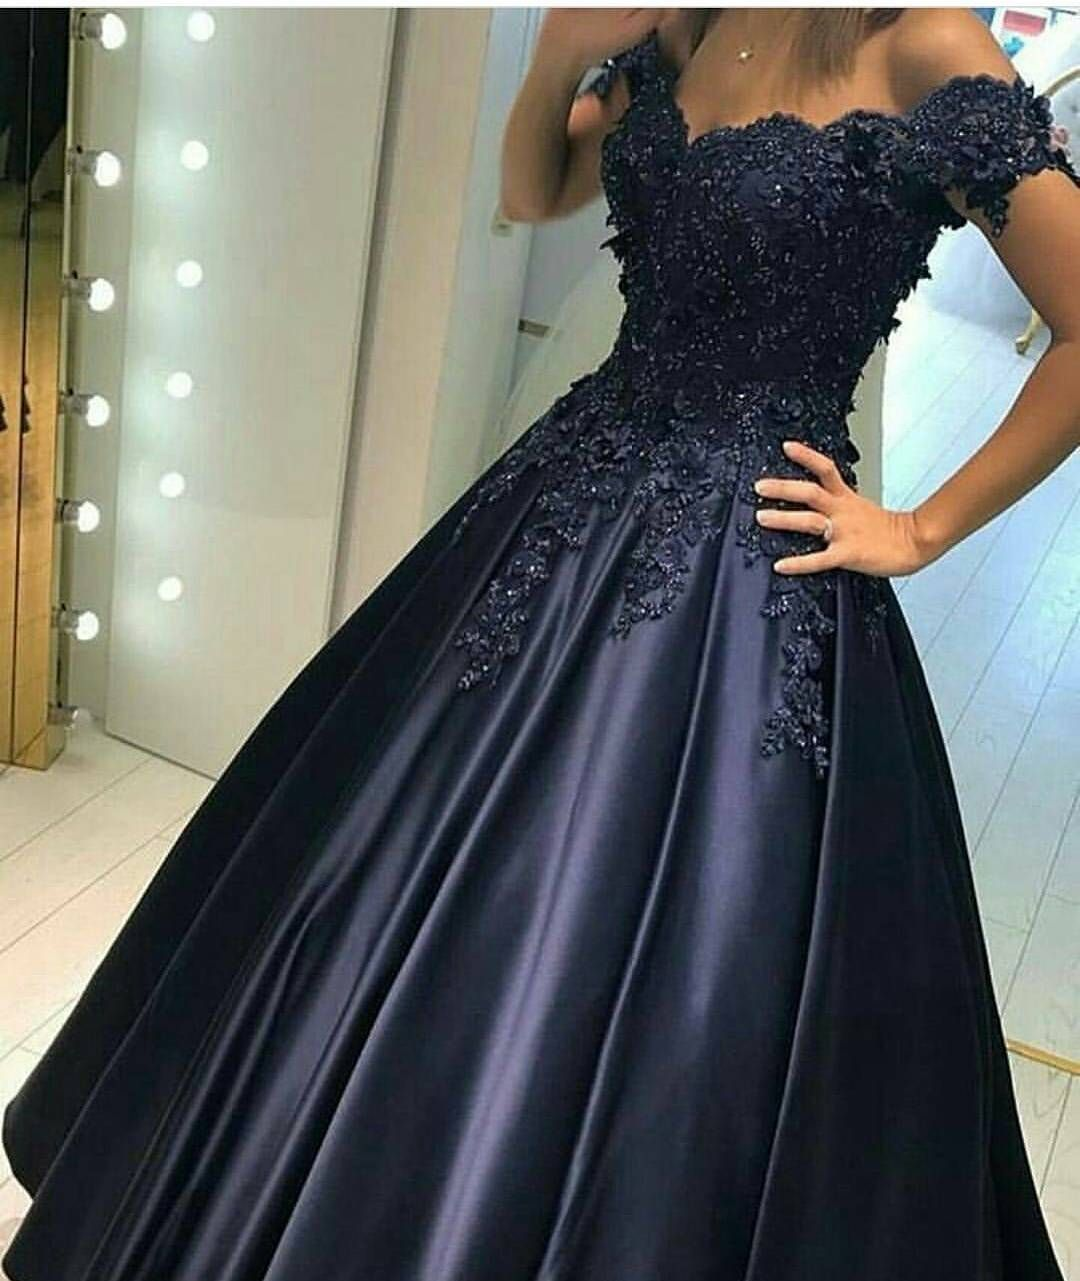 Pin by Tara Roberts on The Fanciest of Dresses in Pinterest